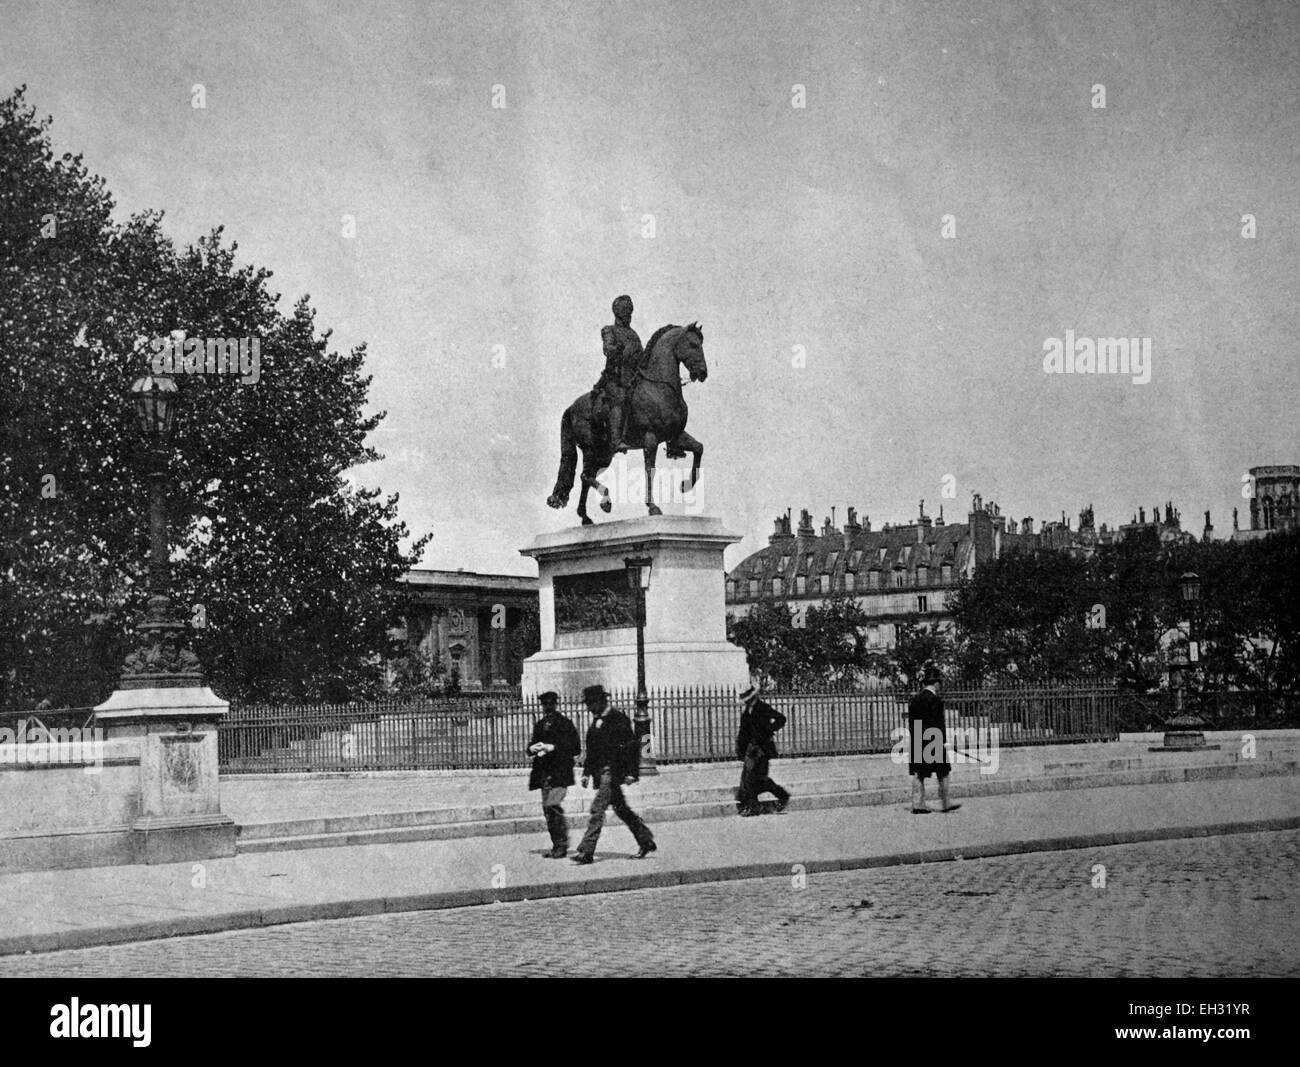 One of the first autotypes of the statue of Henri IV on Pont Neuf, Paris, France, historical photograph, 1884 - Stock Image